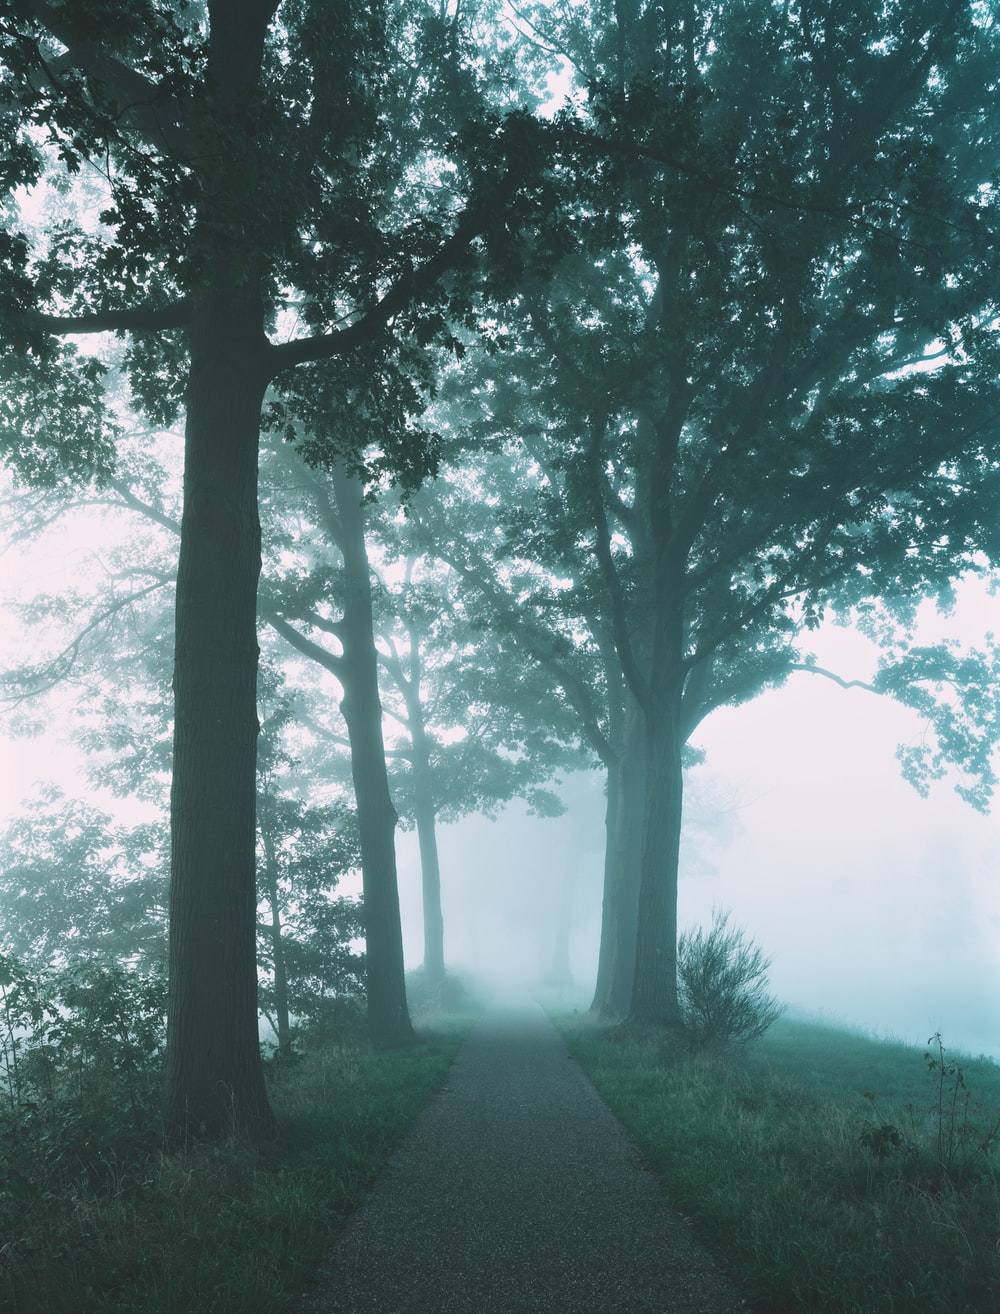 alley in between trees covered with fogs